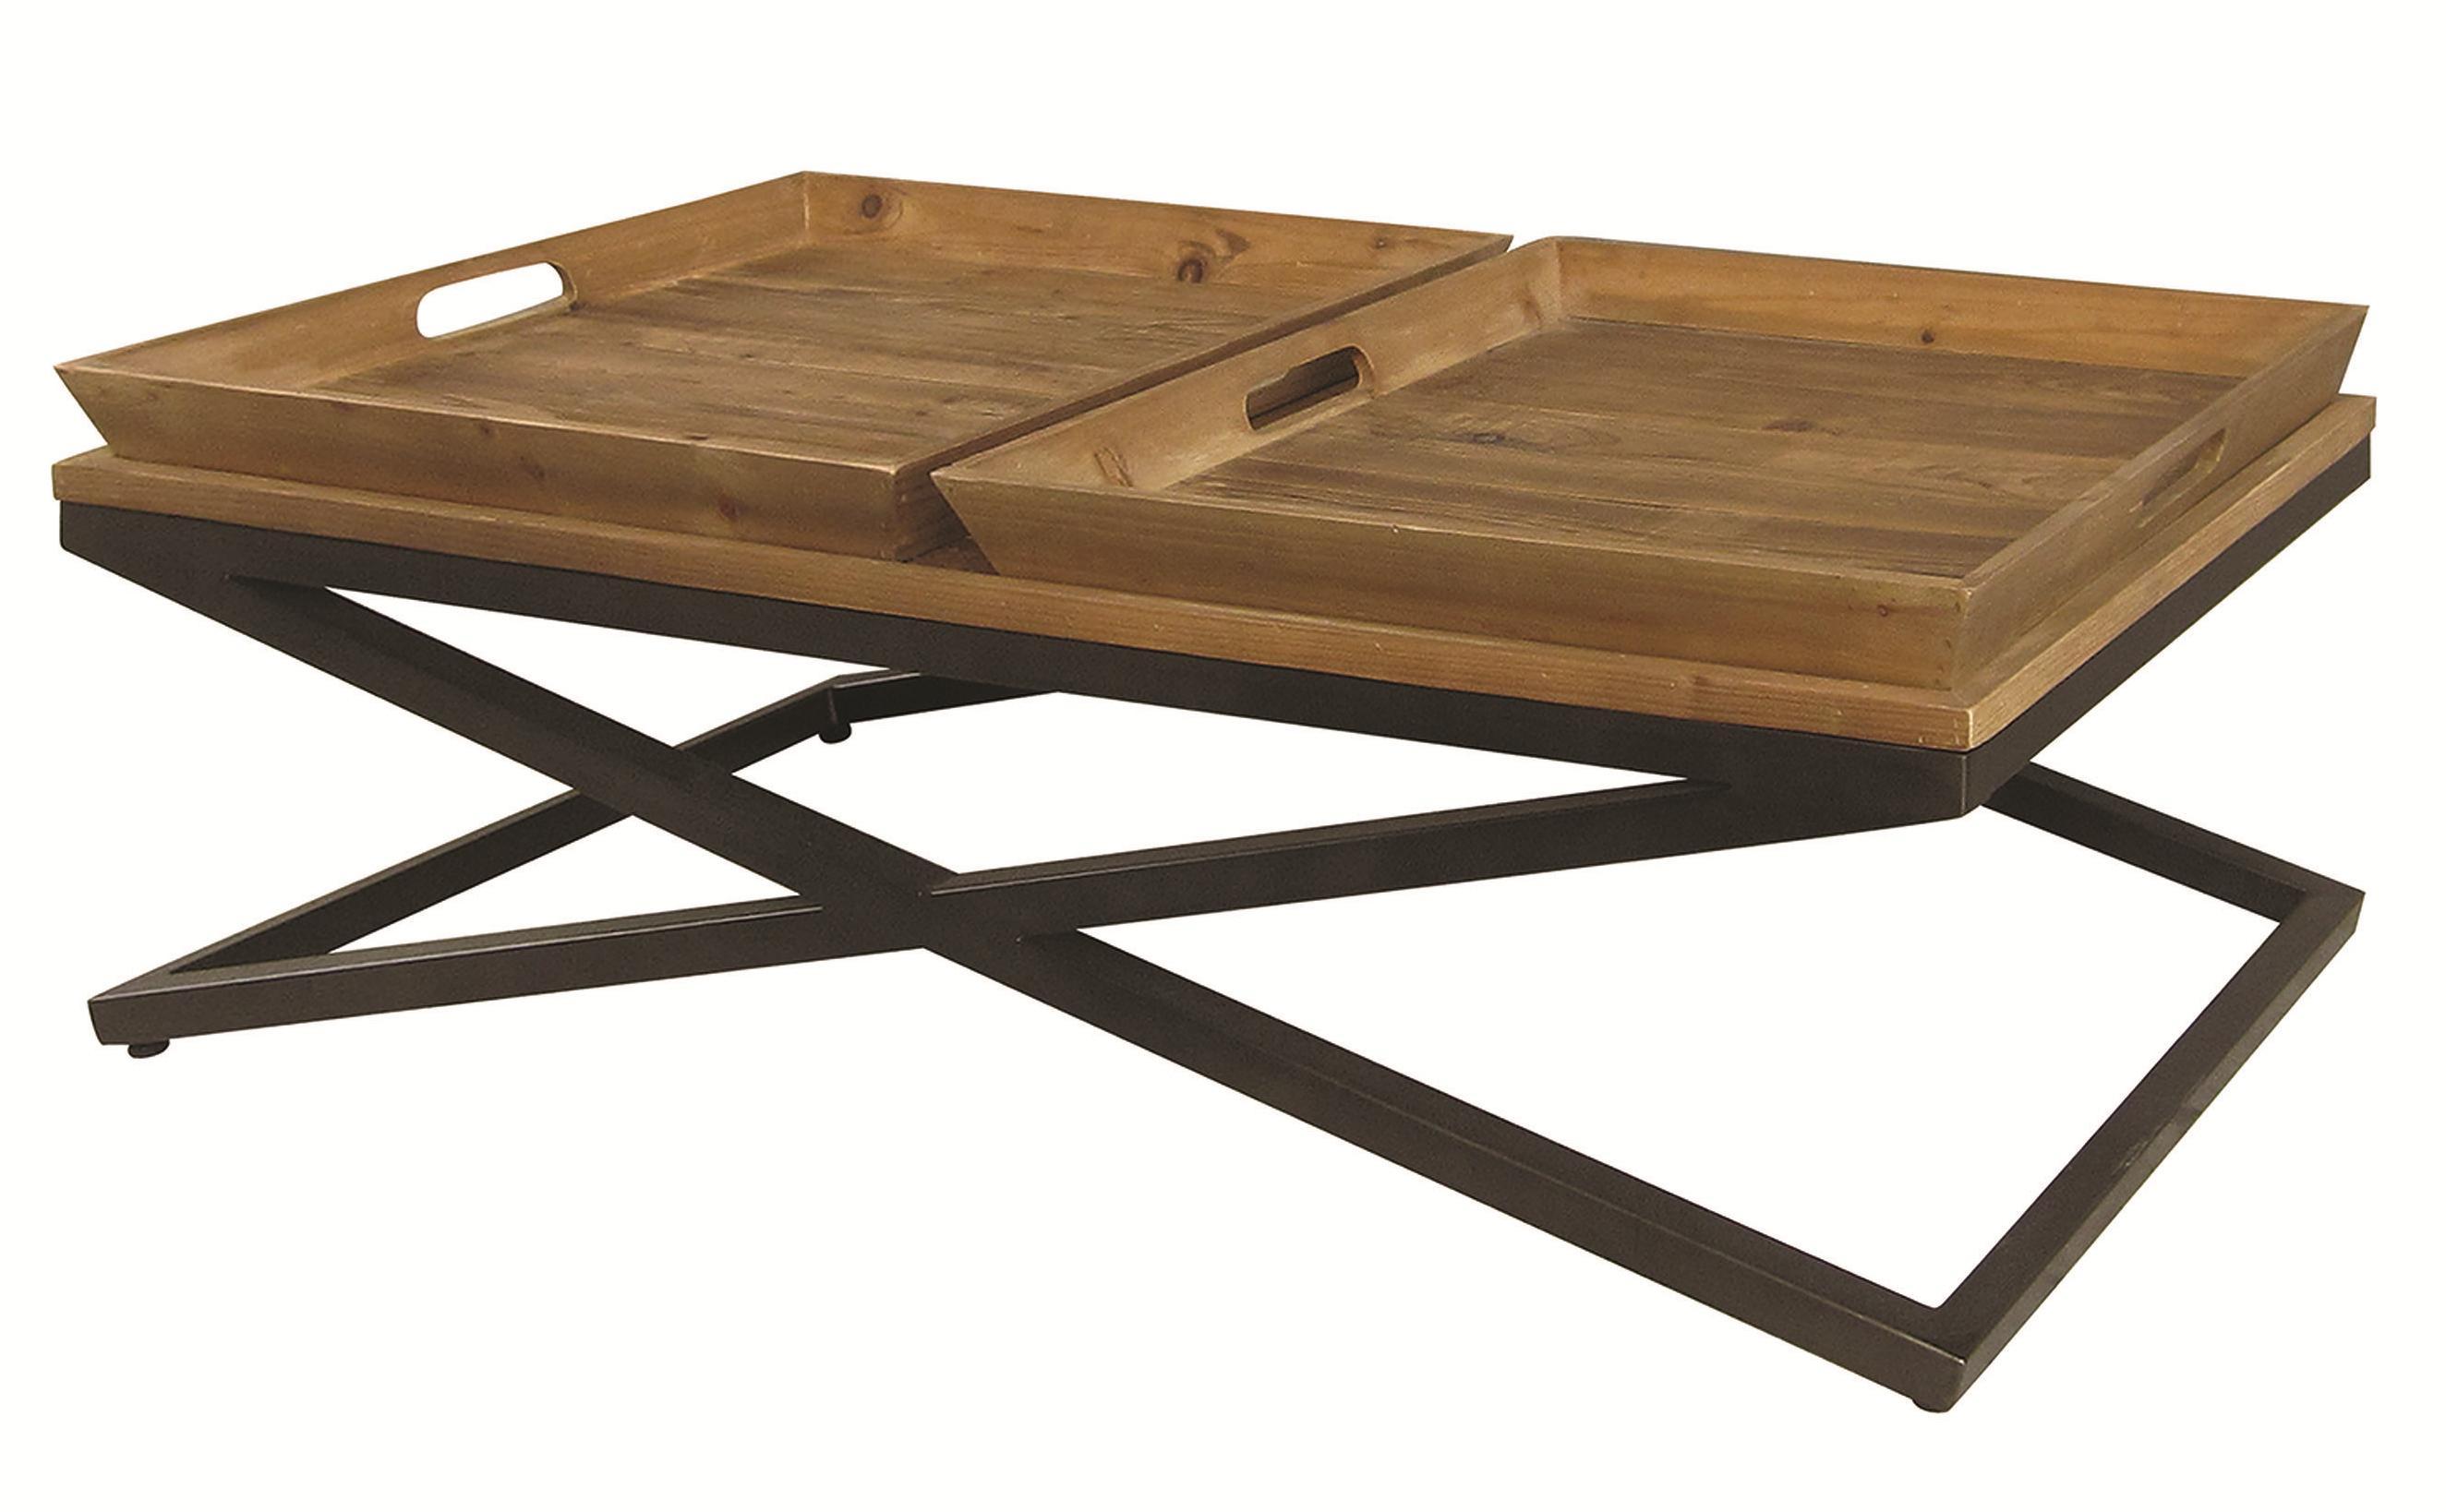 Four Hands Irondale Jax Wood Metal Coffee Table W Trays Belfort Furniture Cocktail Coffee